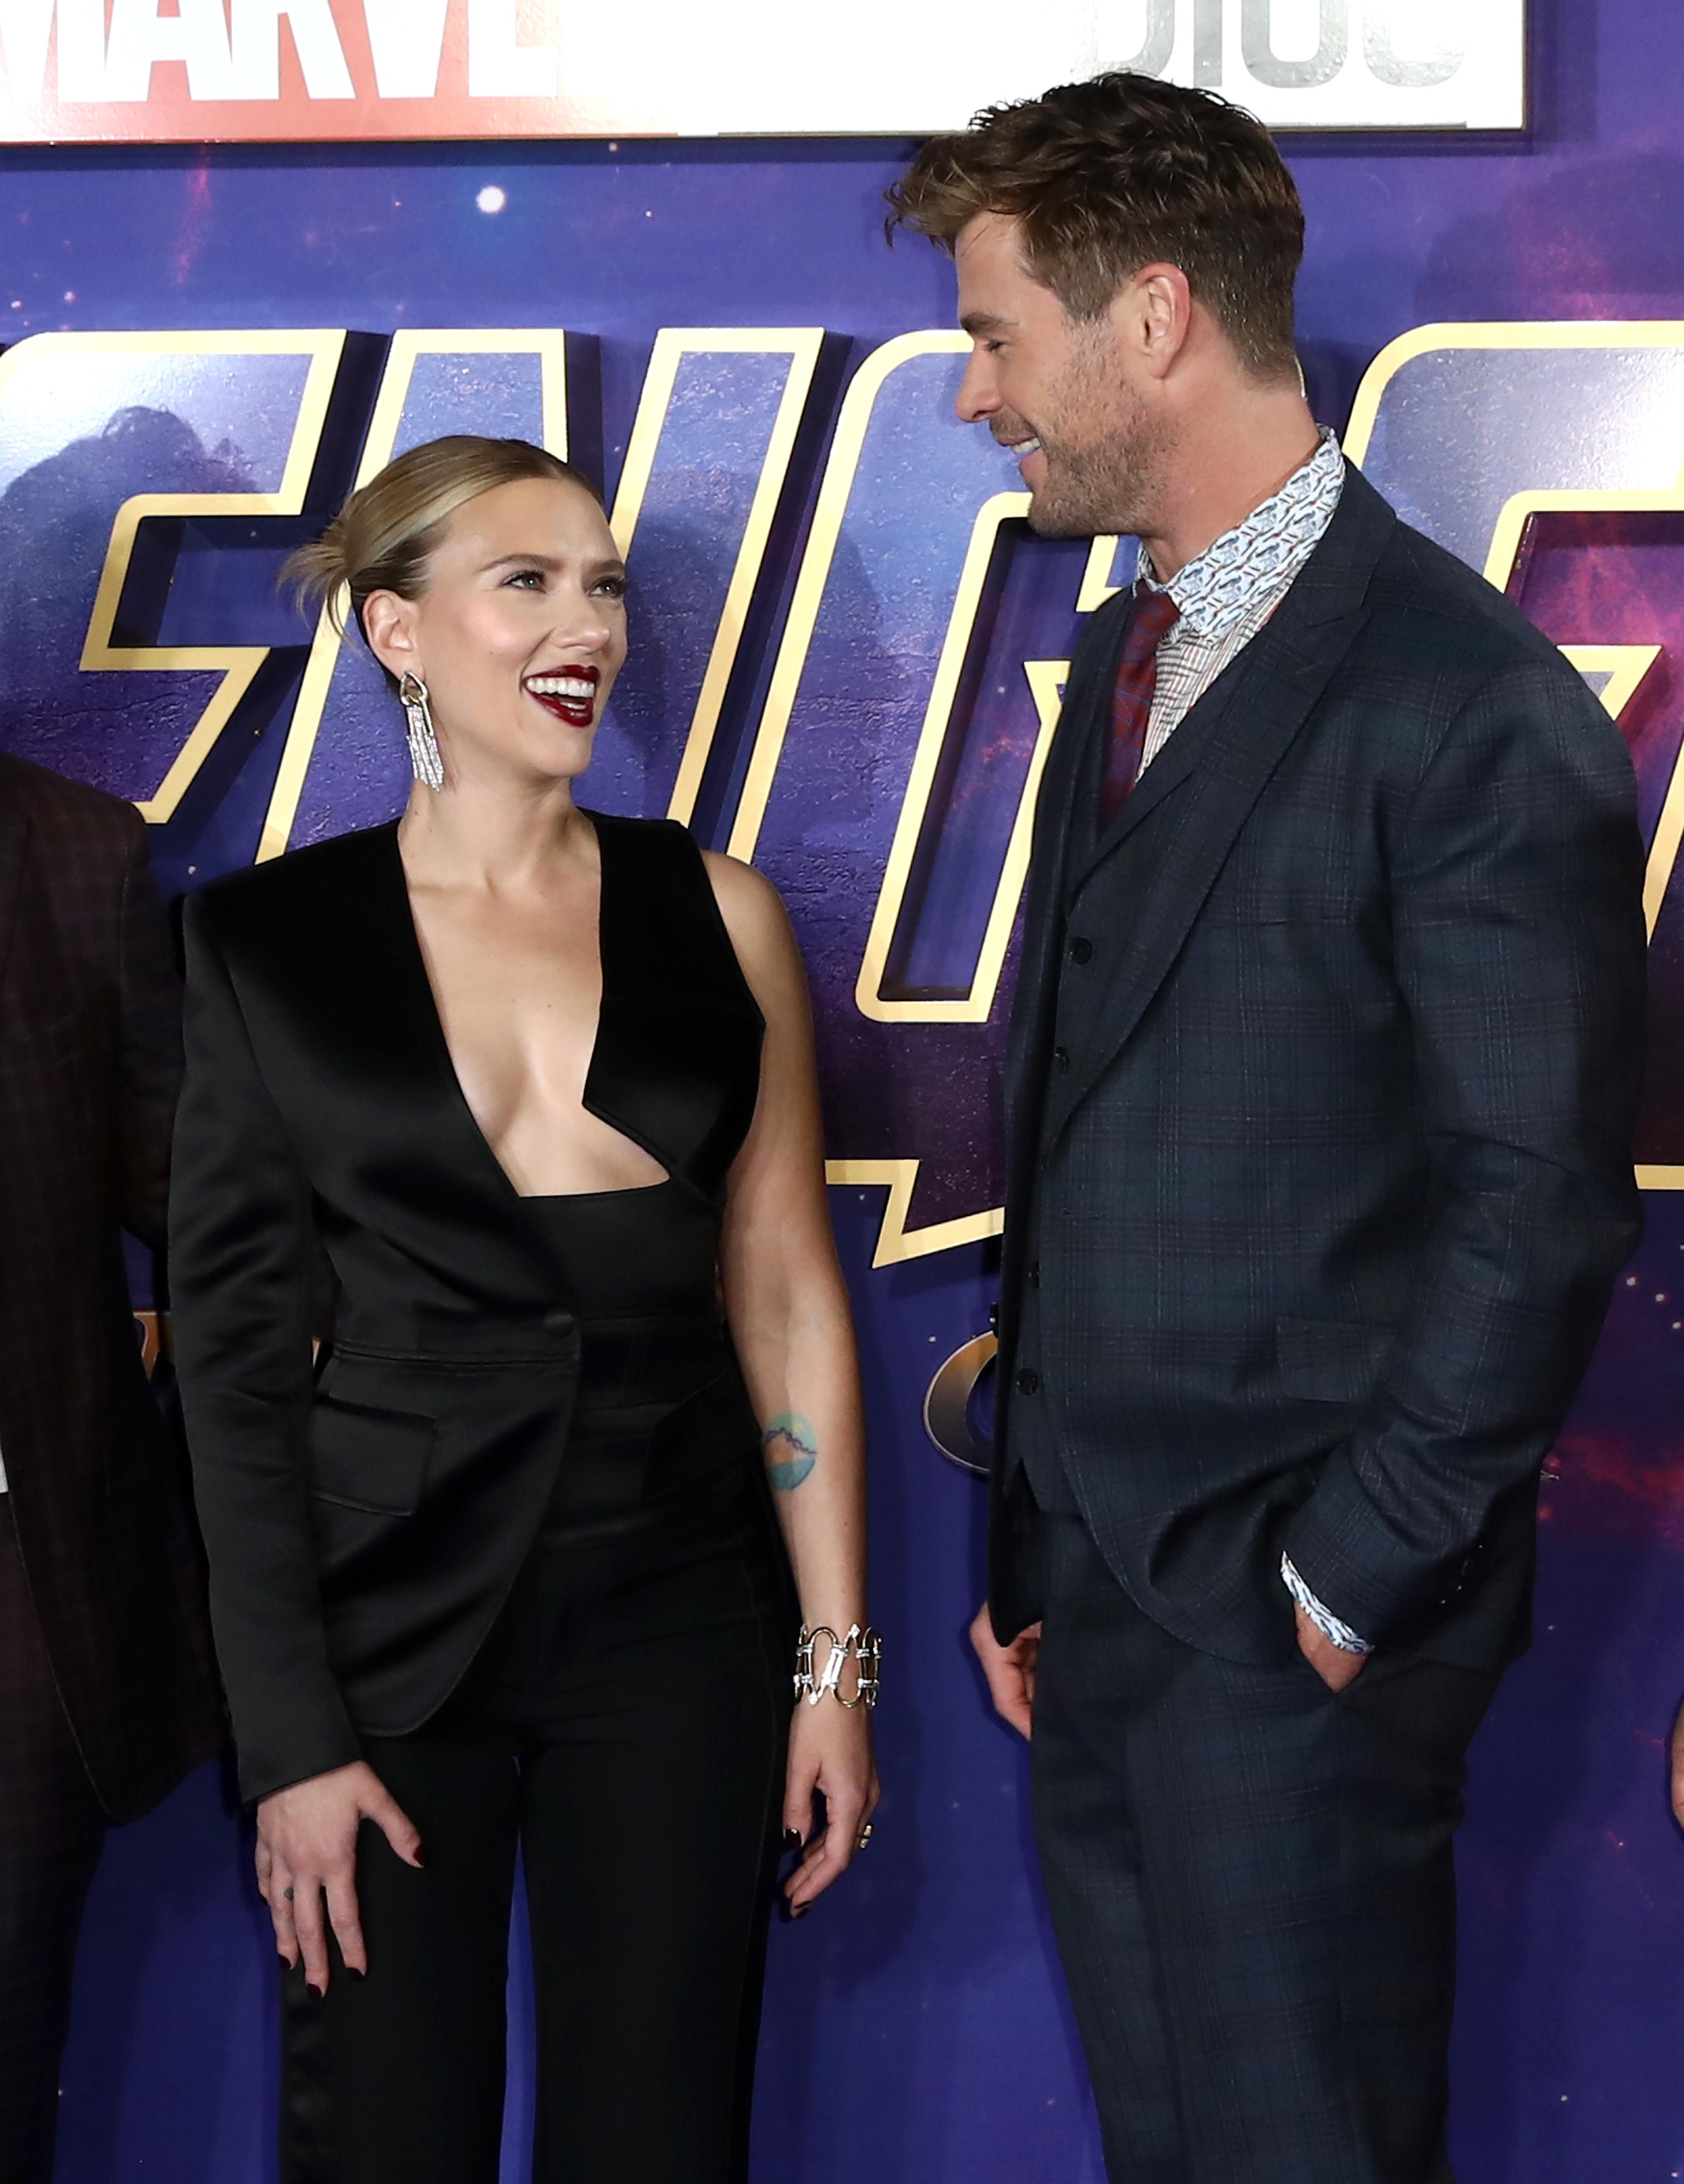 Chris Hemsworth And Scarlett Johansson Trade Hilarious Playground Insults In Youtube Video